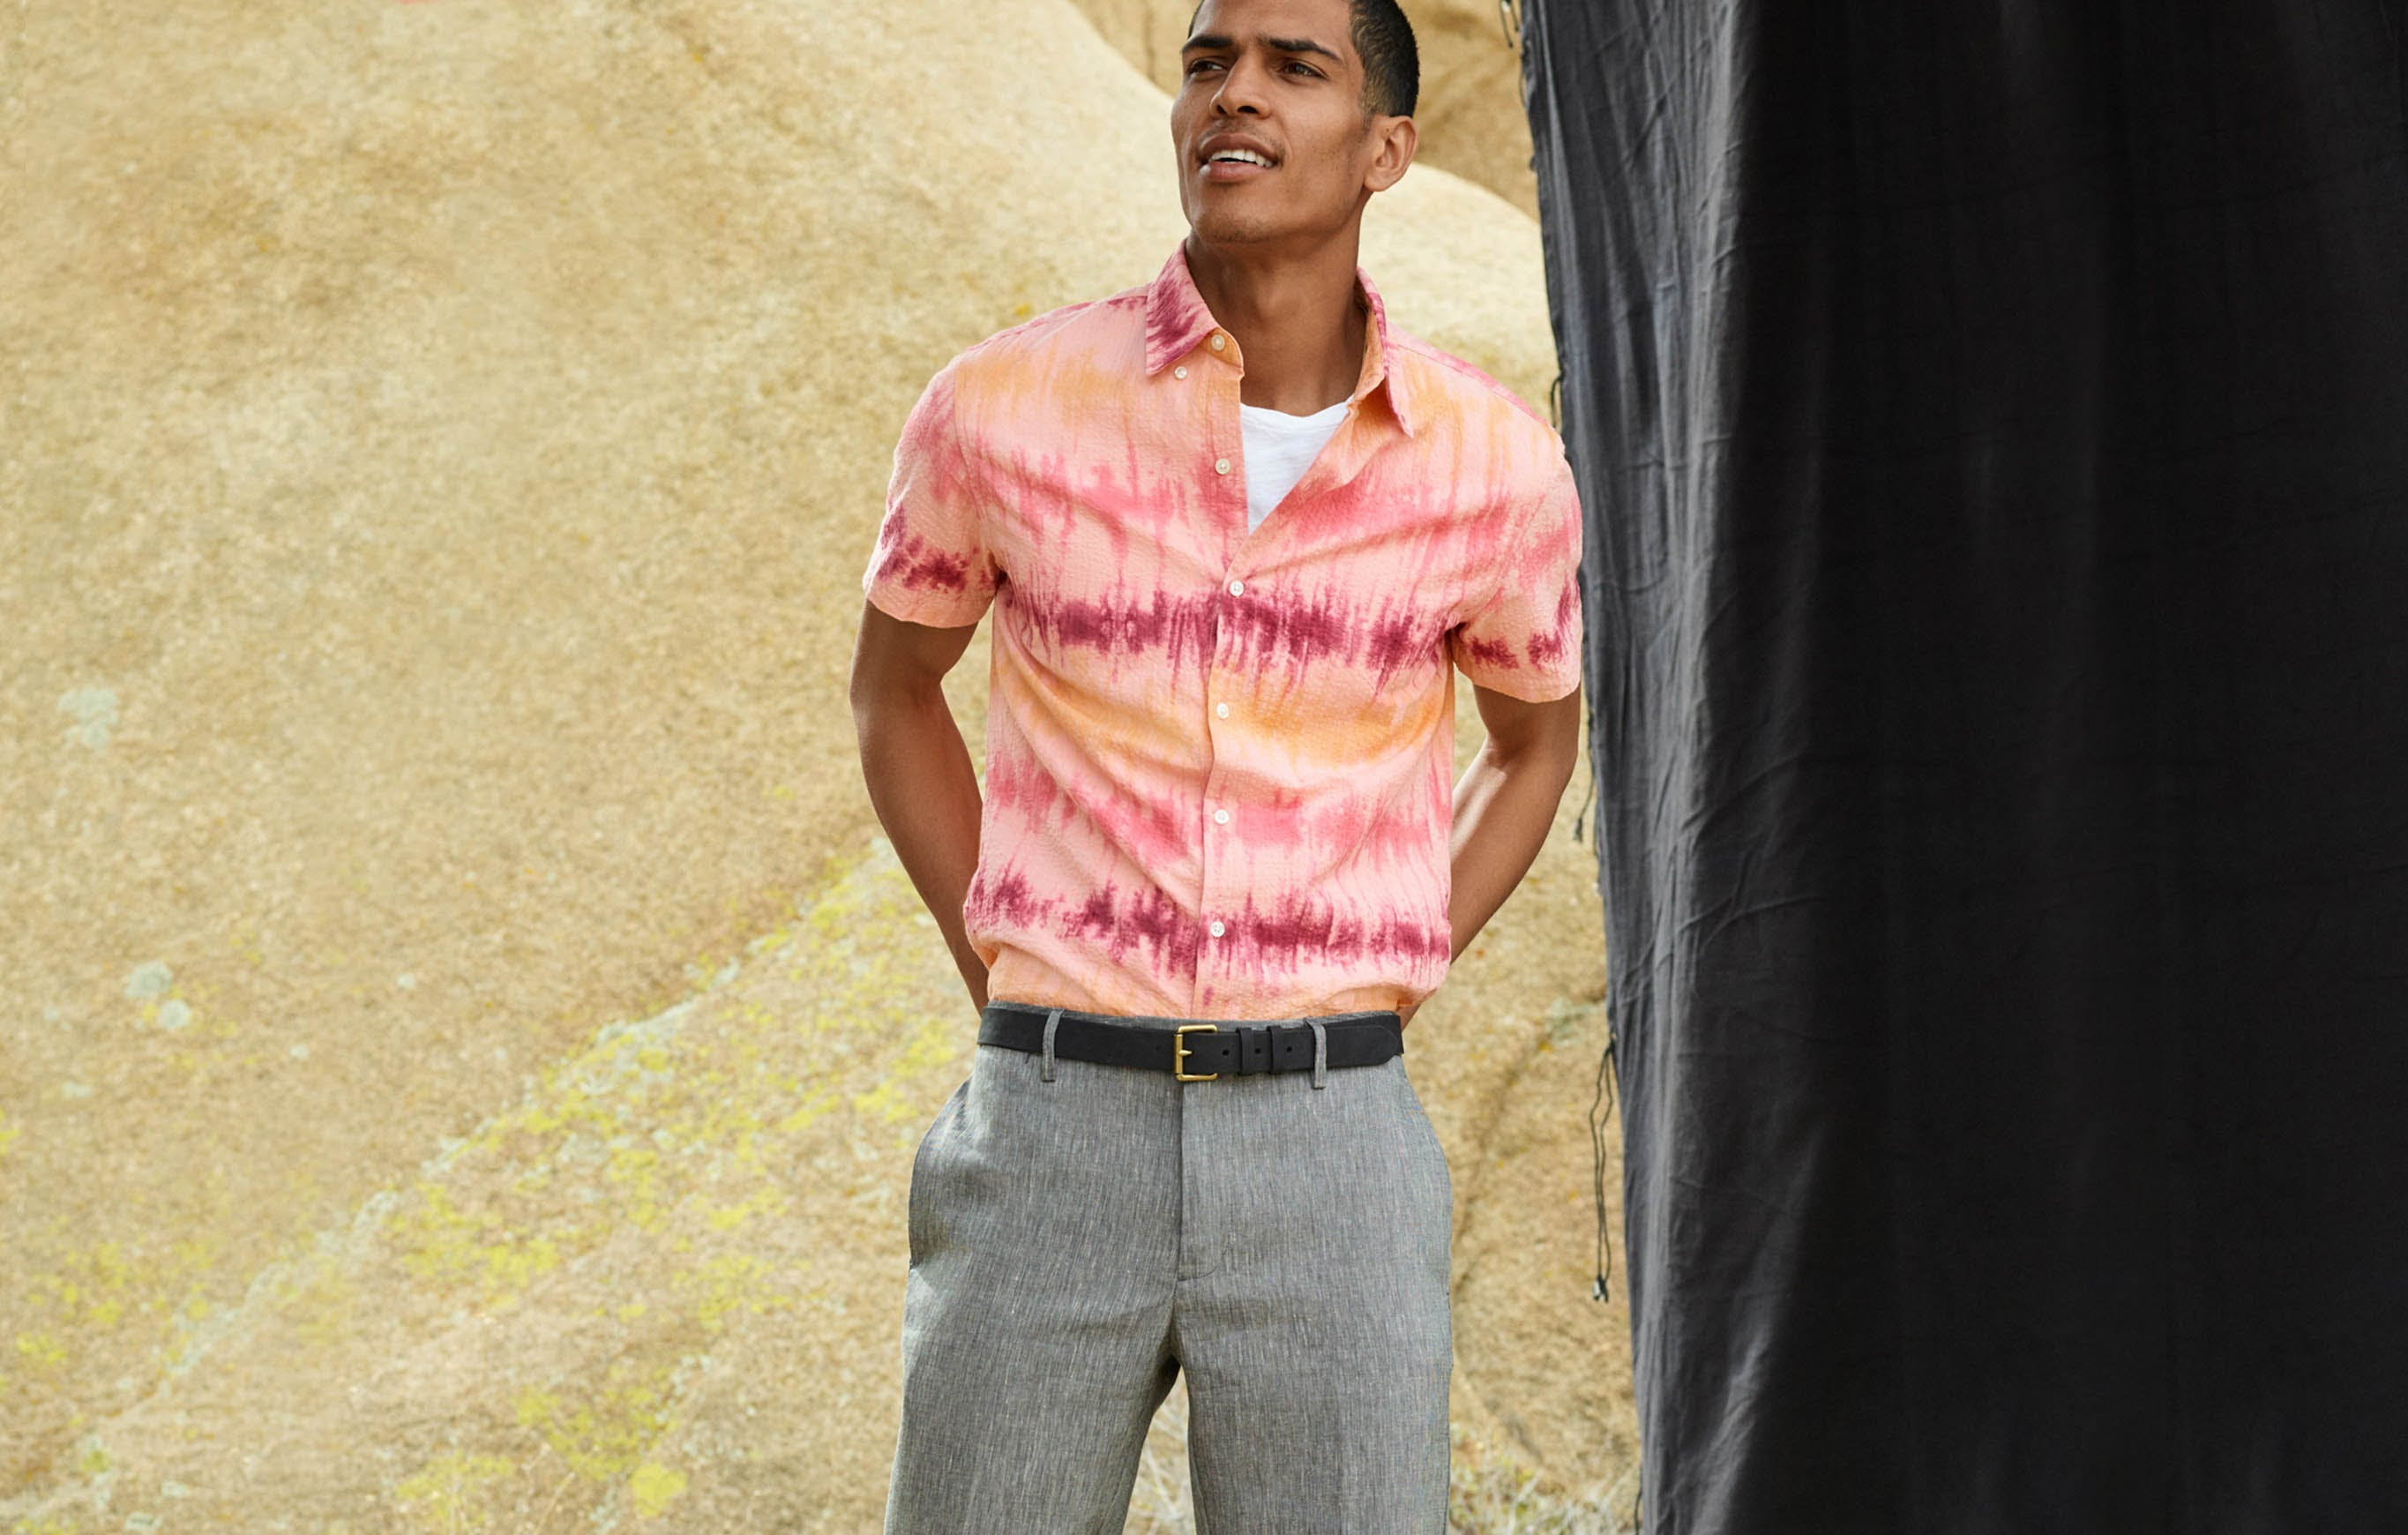 Tie-dye and seersucker are an unlikely duo, but two great summer things can make one great summer outfit. This seersucker shirt's stripes were made by pouring dye over tied-off sections. Add linen pants to make the best summer trio.